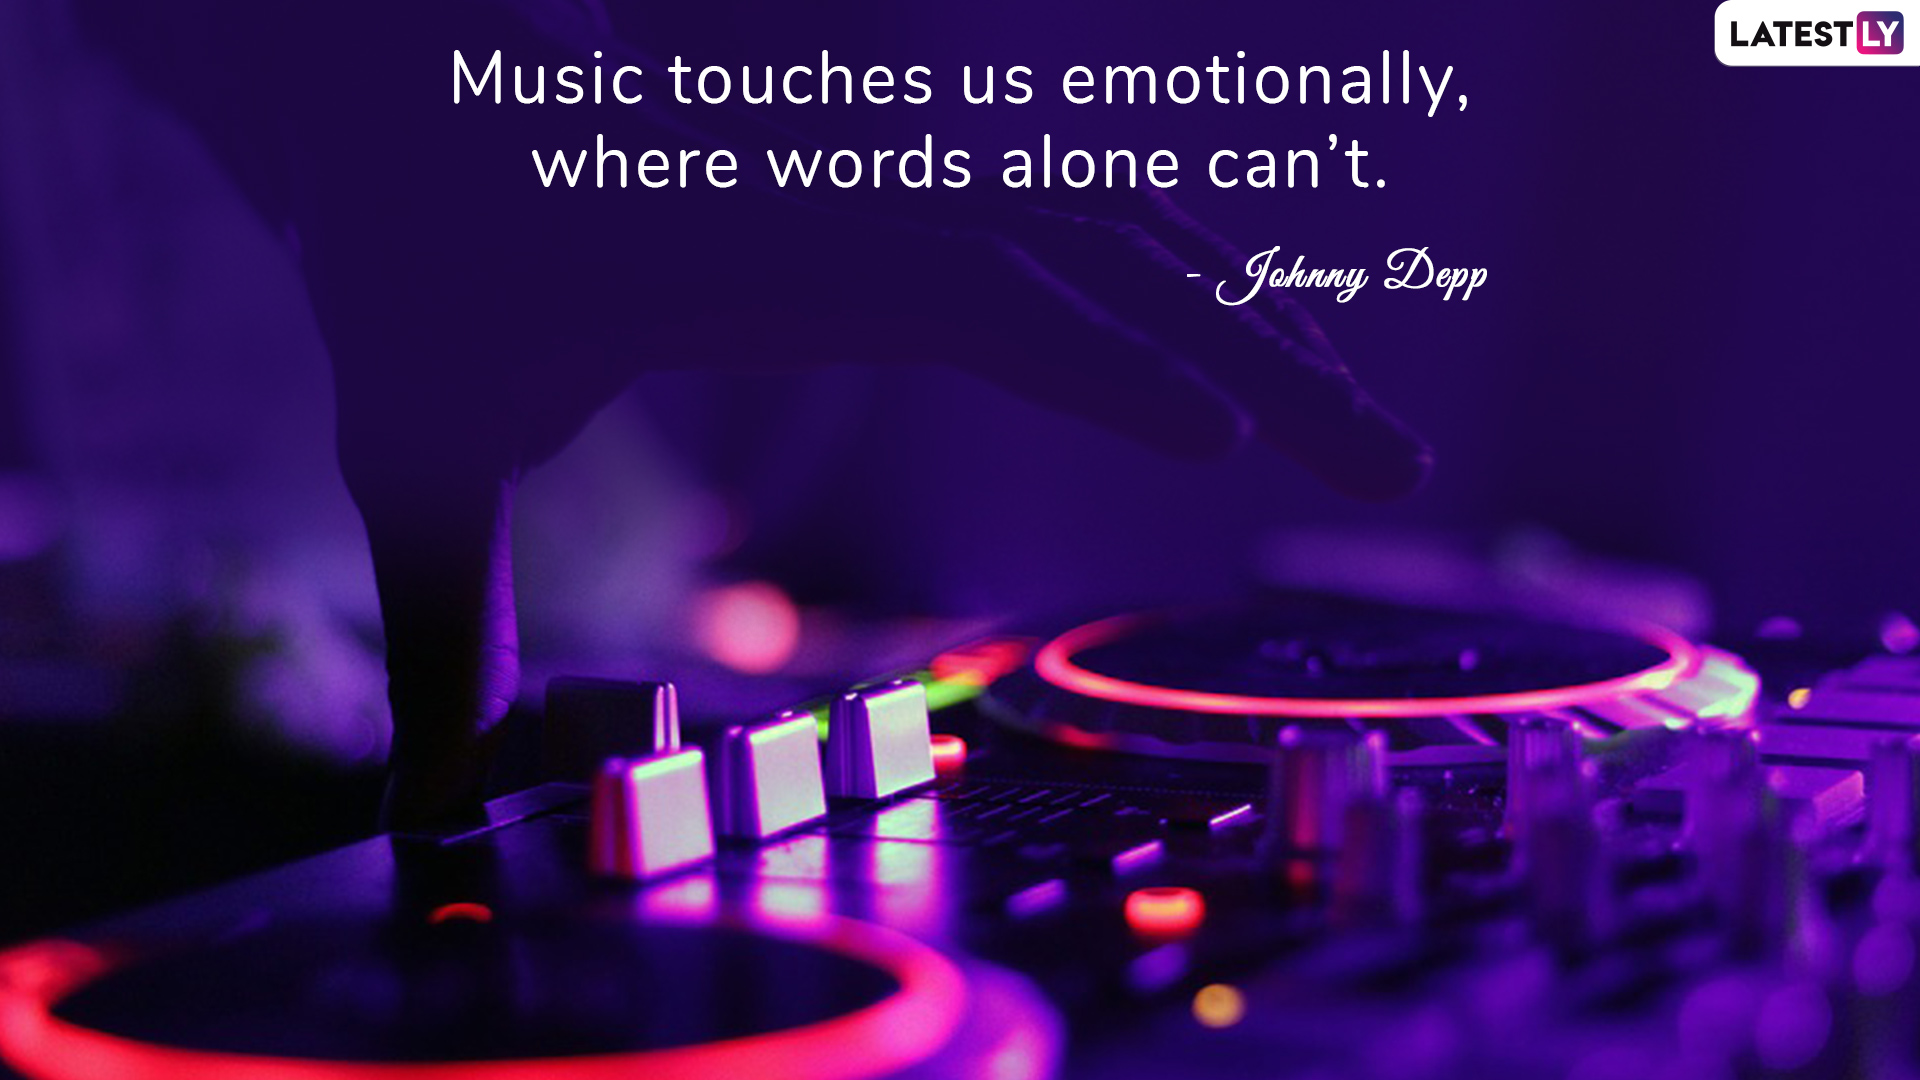 Johnny Depp's quote on music to celebrate World Music Day 2019 (Photo Credits: File Image)